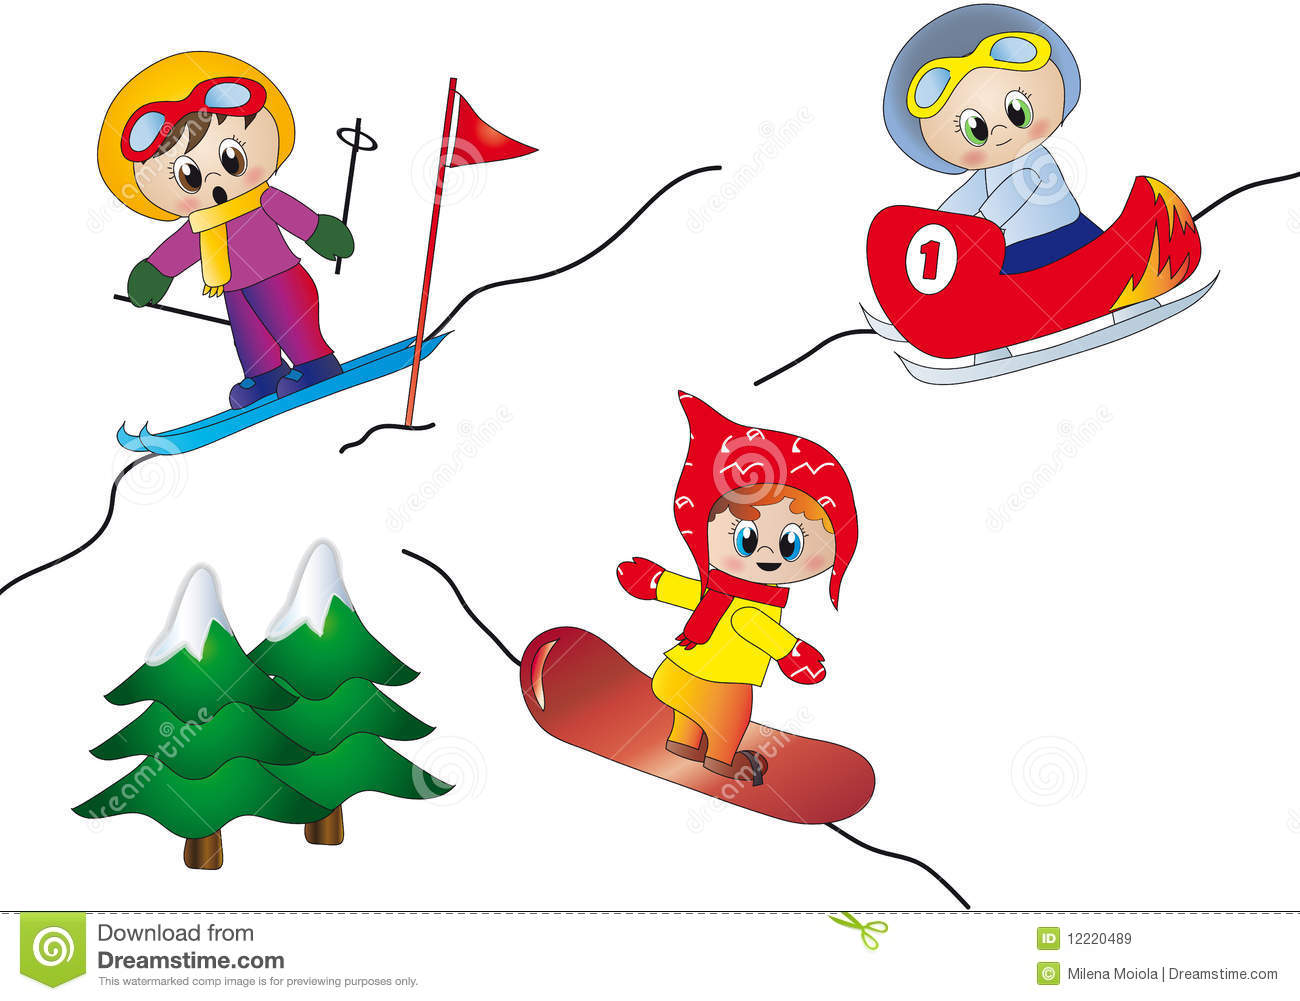 Illustration of winter sport: ski, snowboard and bobsleigh.